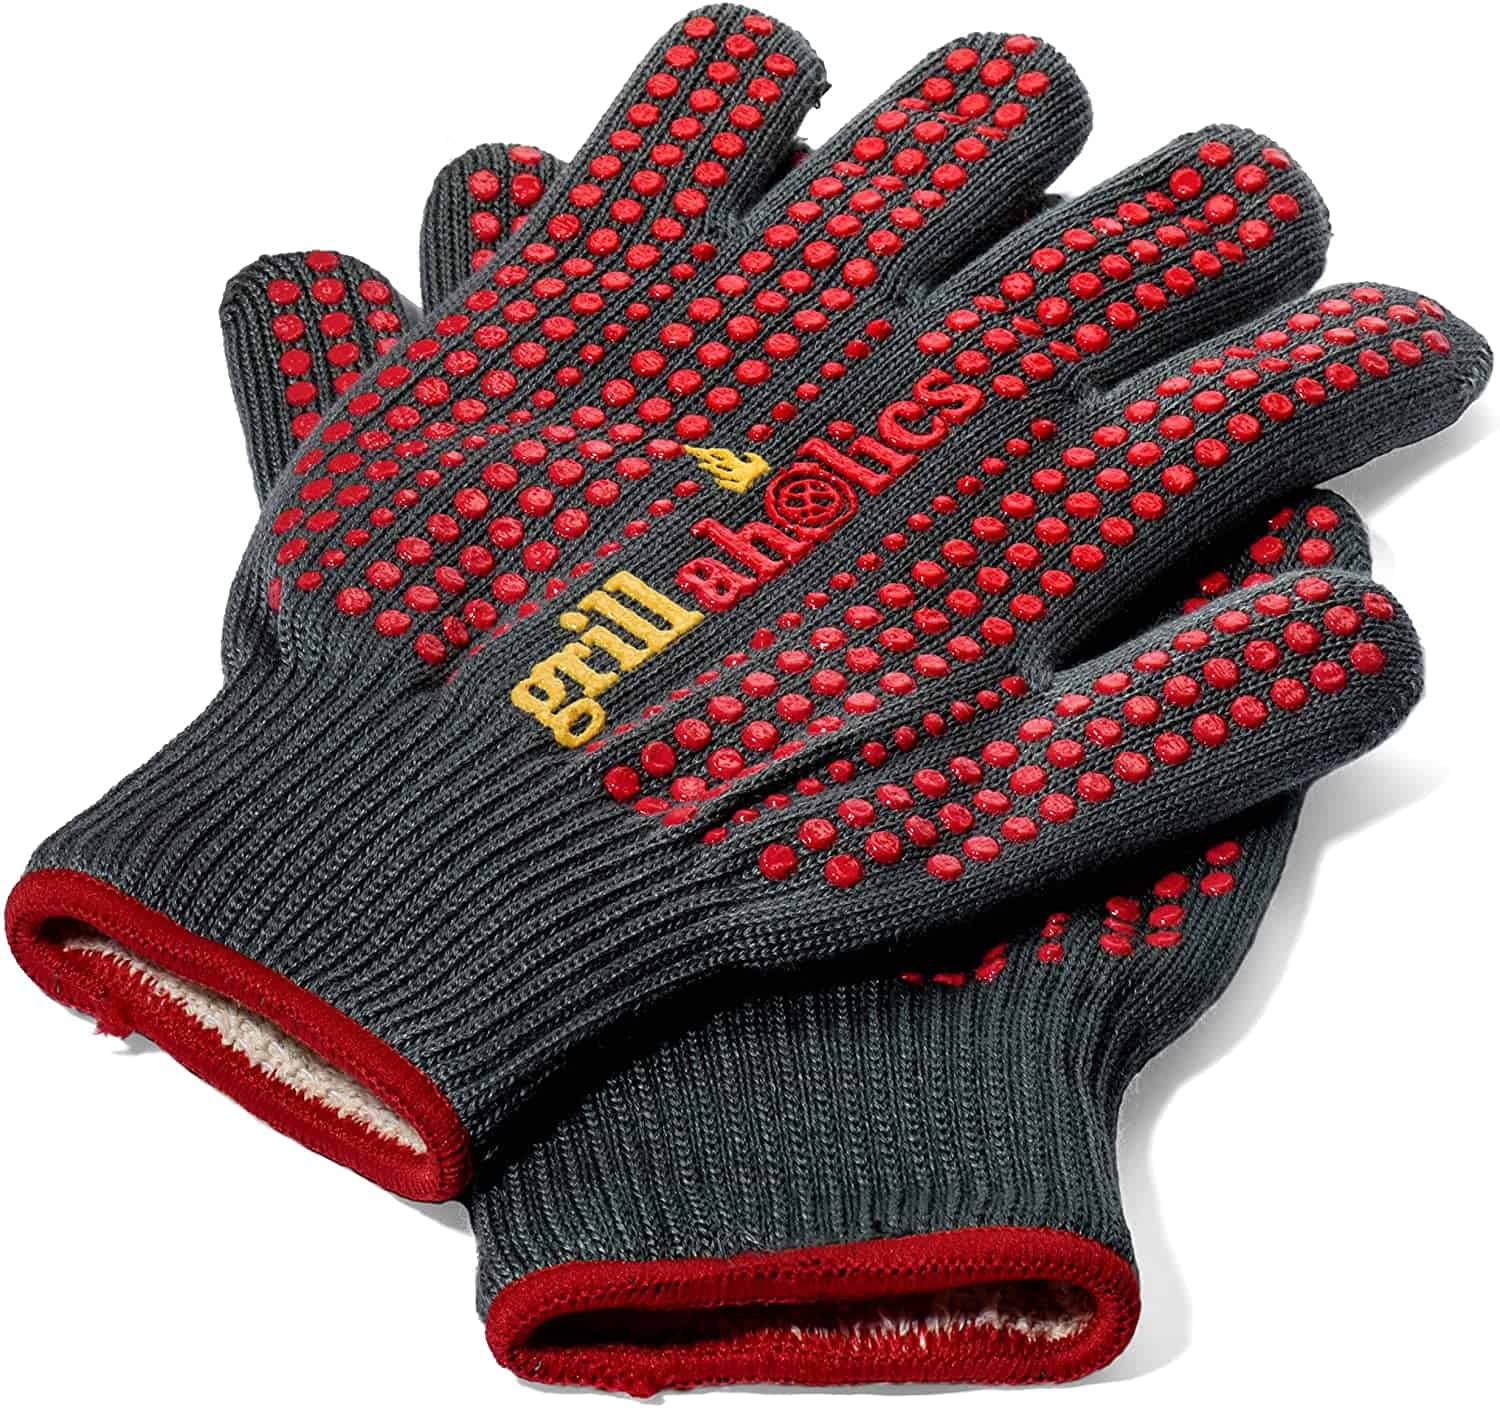 Best silicone BBQ gloves- Grillaholics Silicone Barbecue Gloves